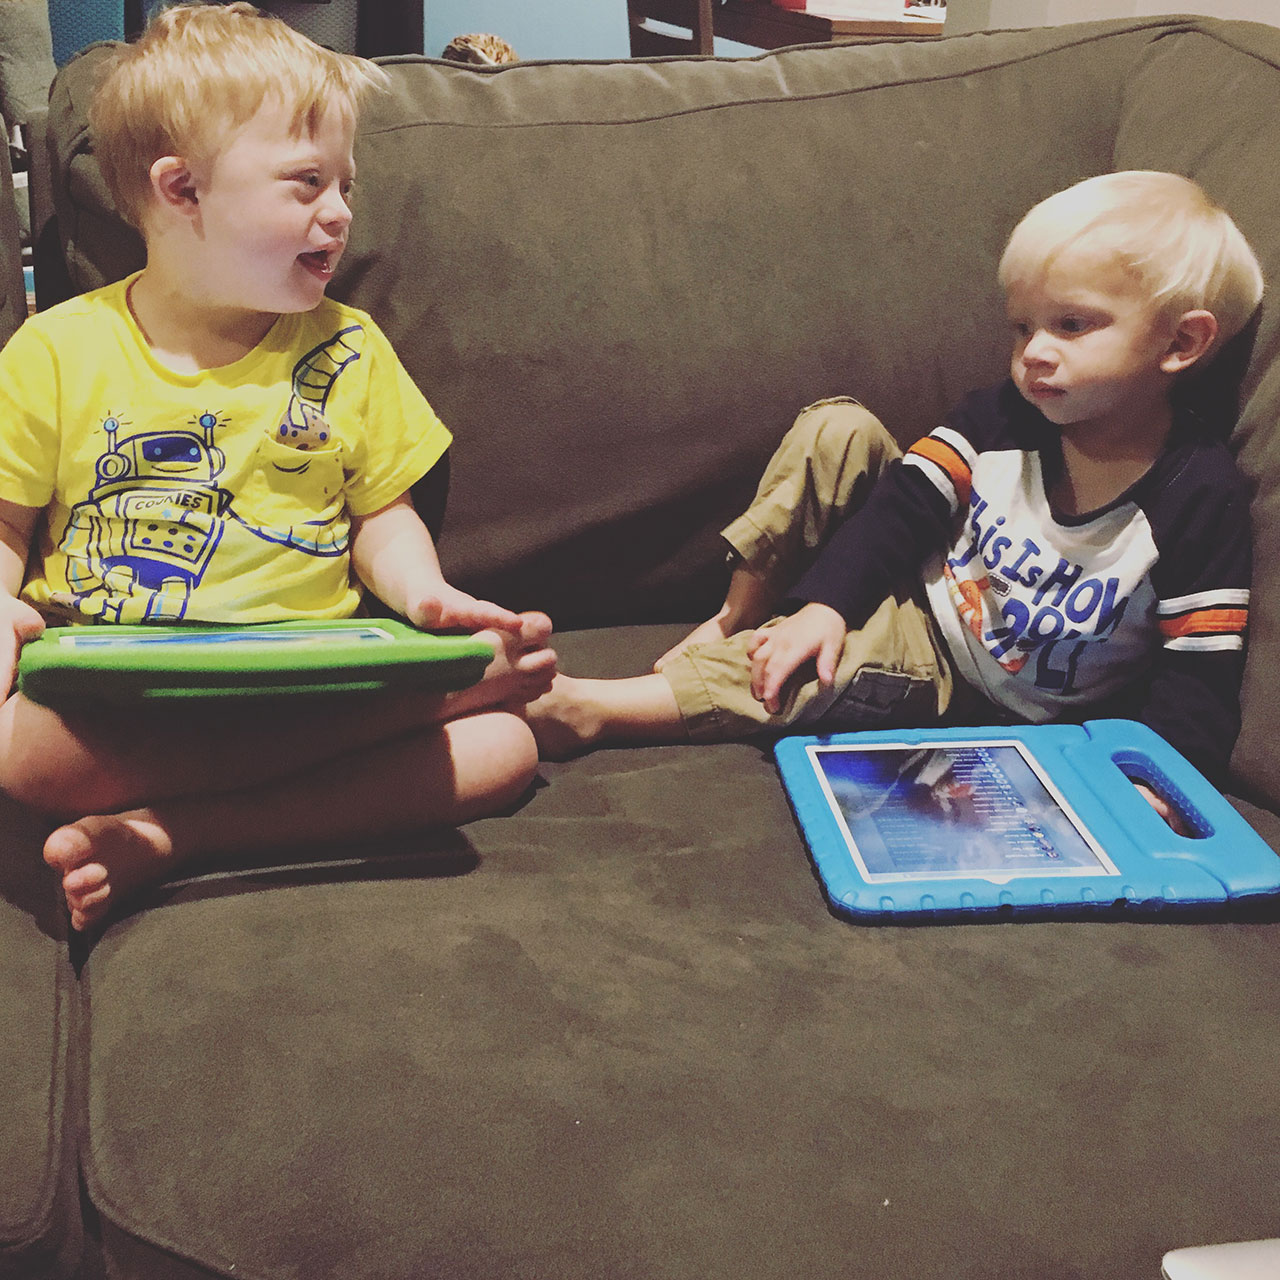 child with down syndrome using ipad